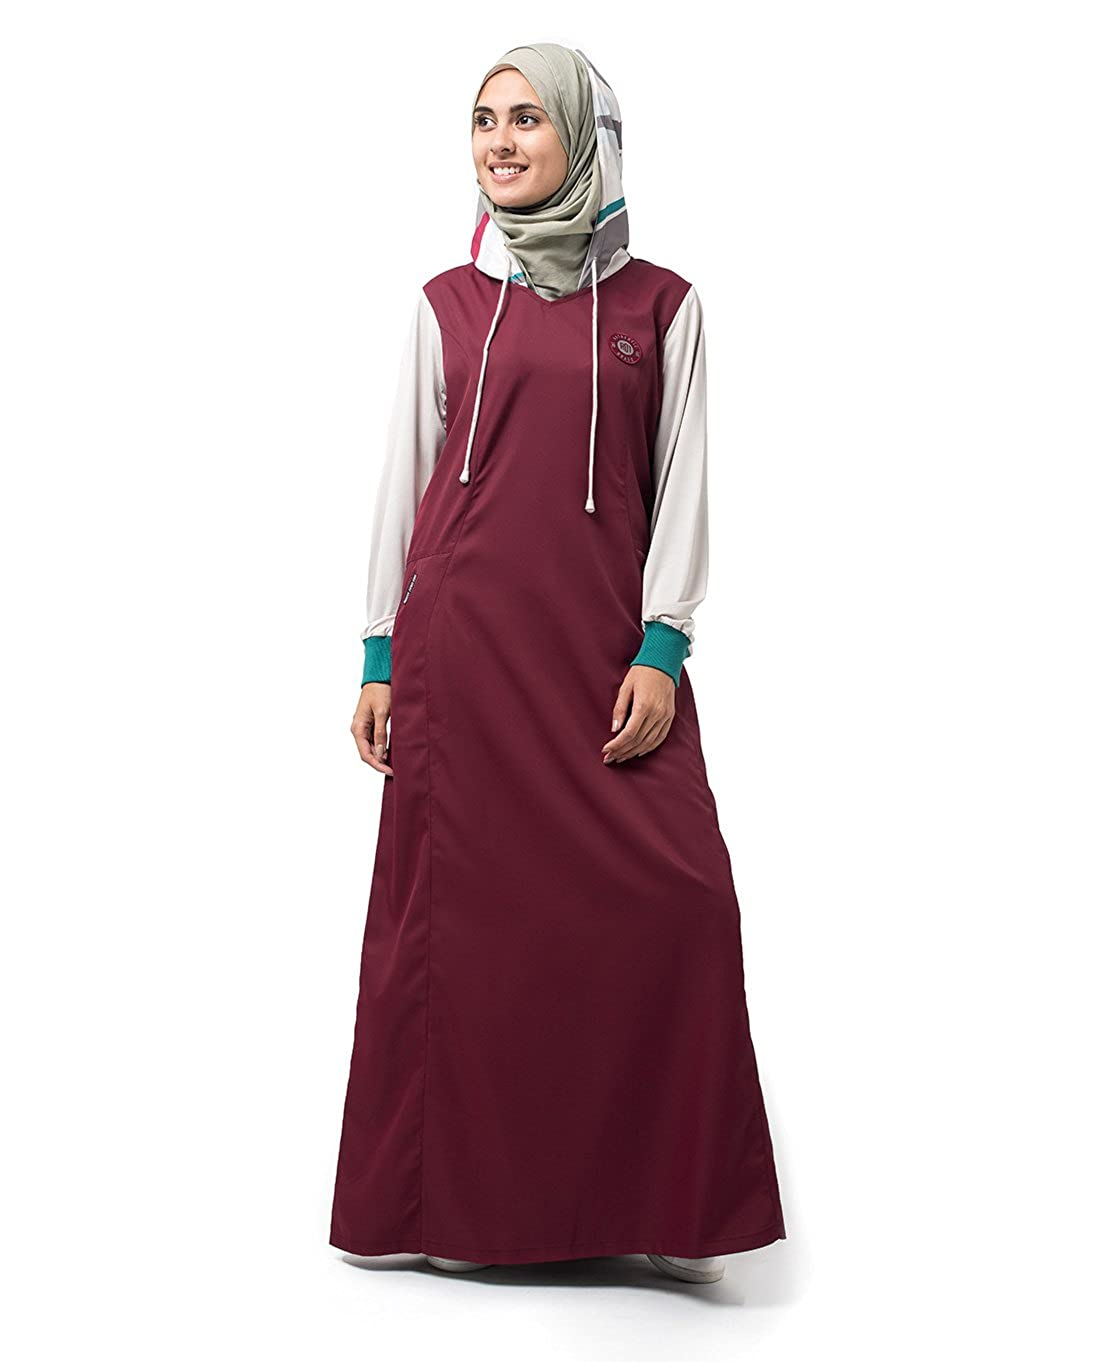 Silk Route Maroon Red Printed Hood Colour Block Polyester Sporty Maxi Dress Jilbab